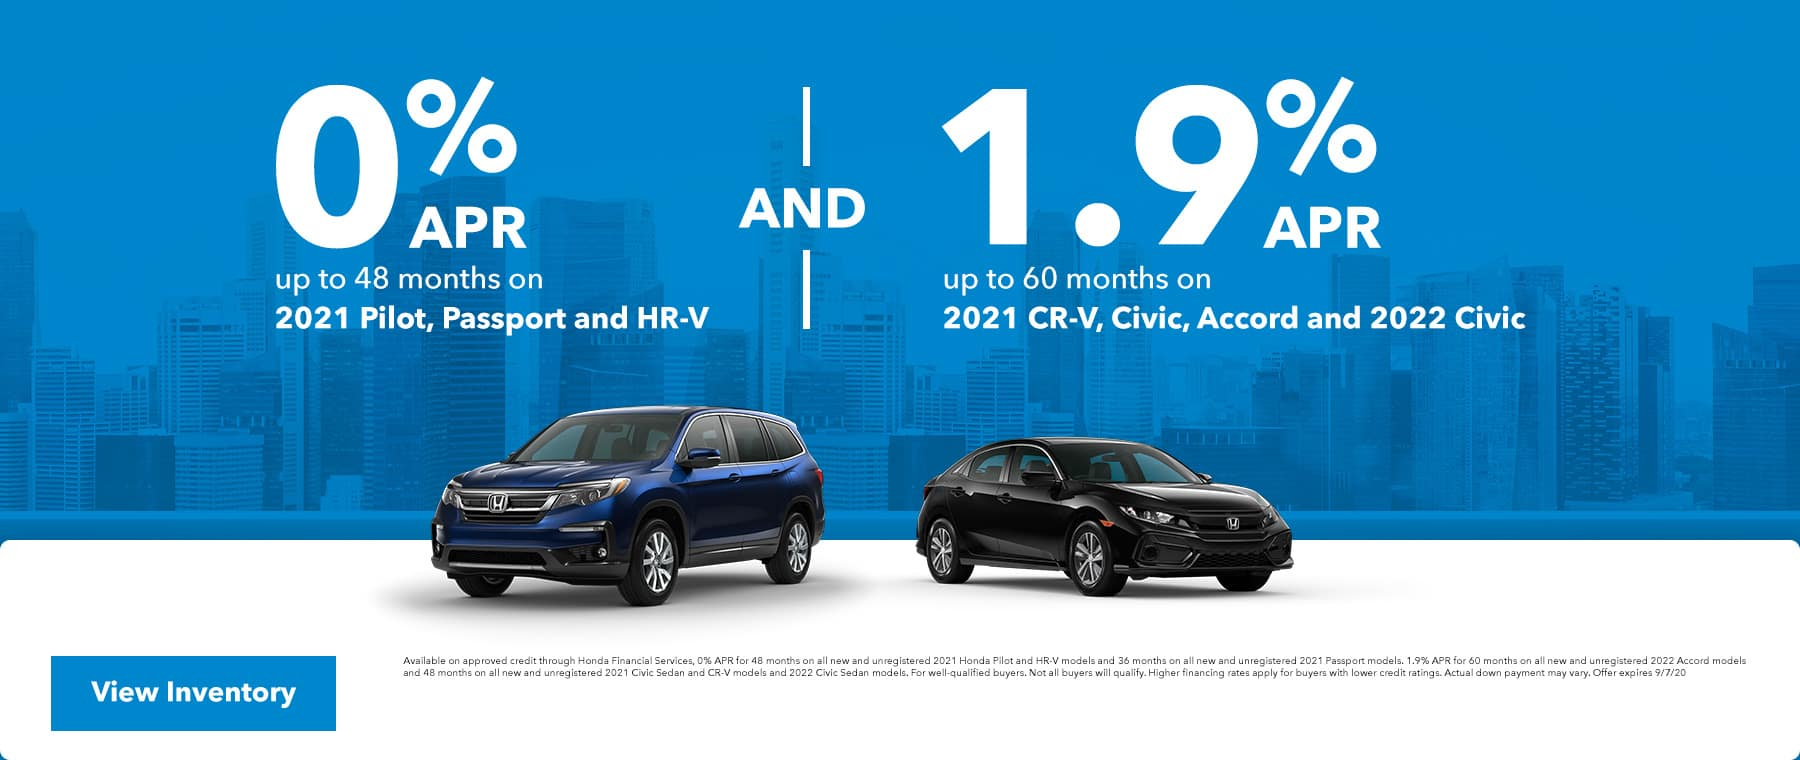 0% APR up to 48 months on 2021 Pilot, Passport and HR-V and 1.9% APR up to 60 months on 2021 CR-V, Civic, Accord and 2022 Civic